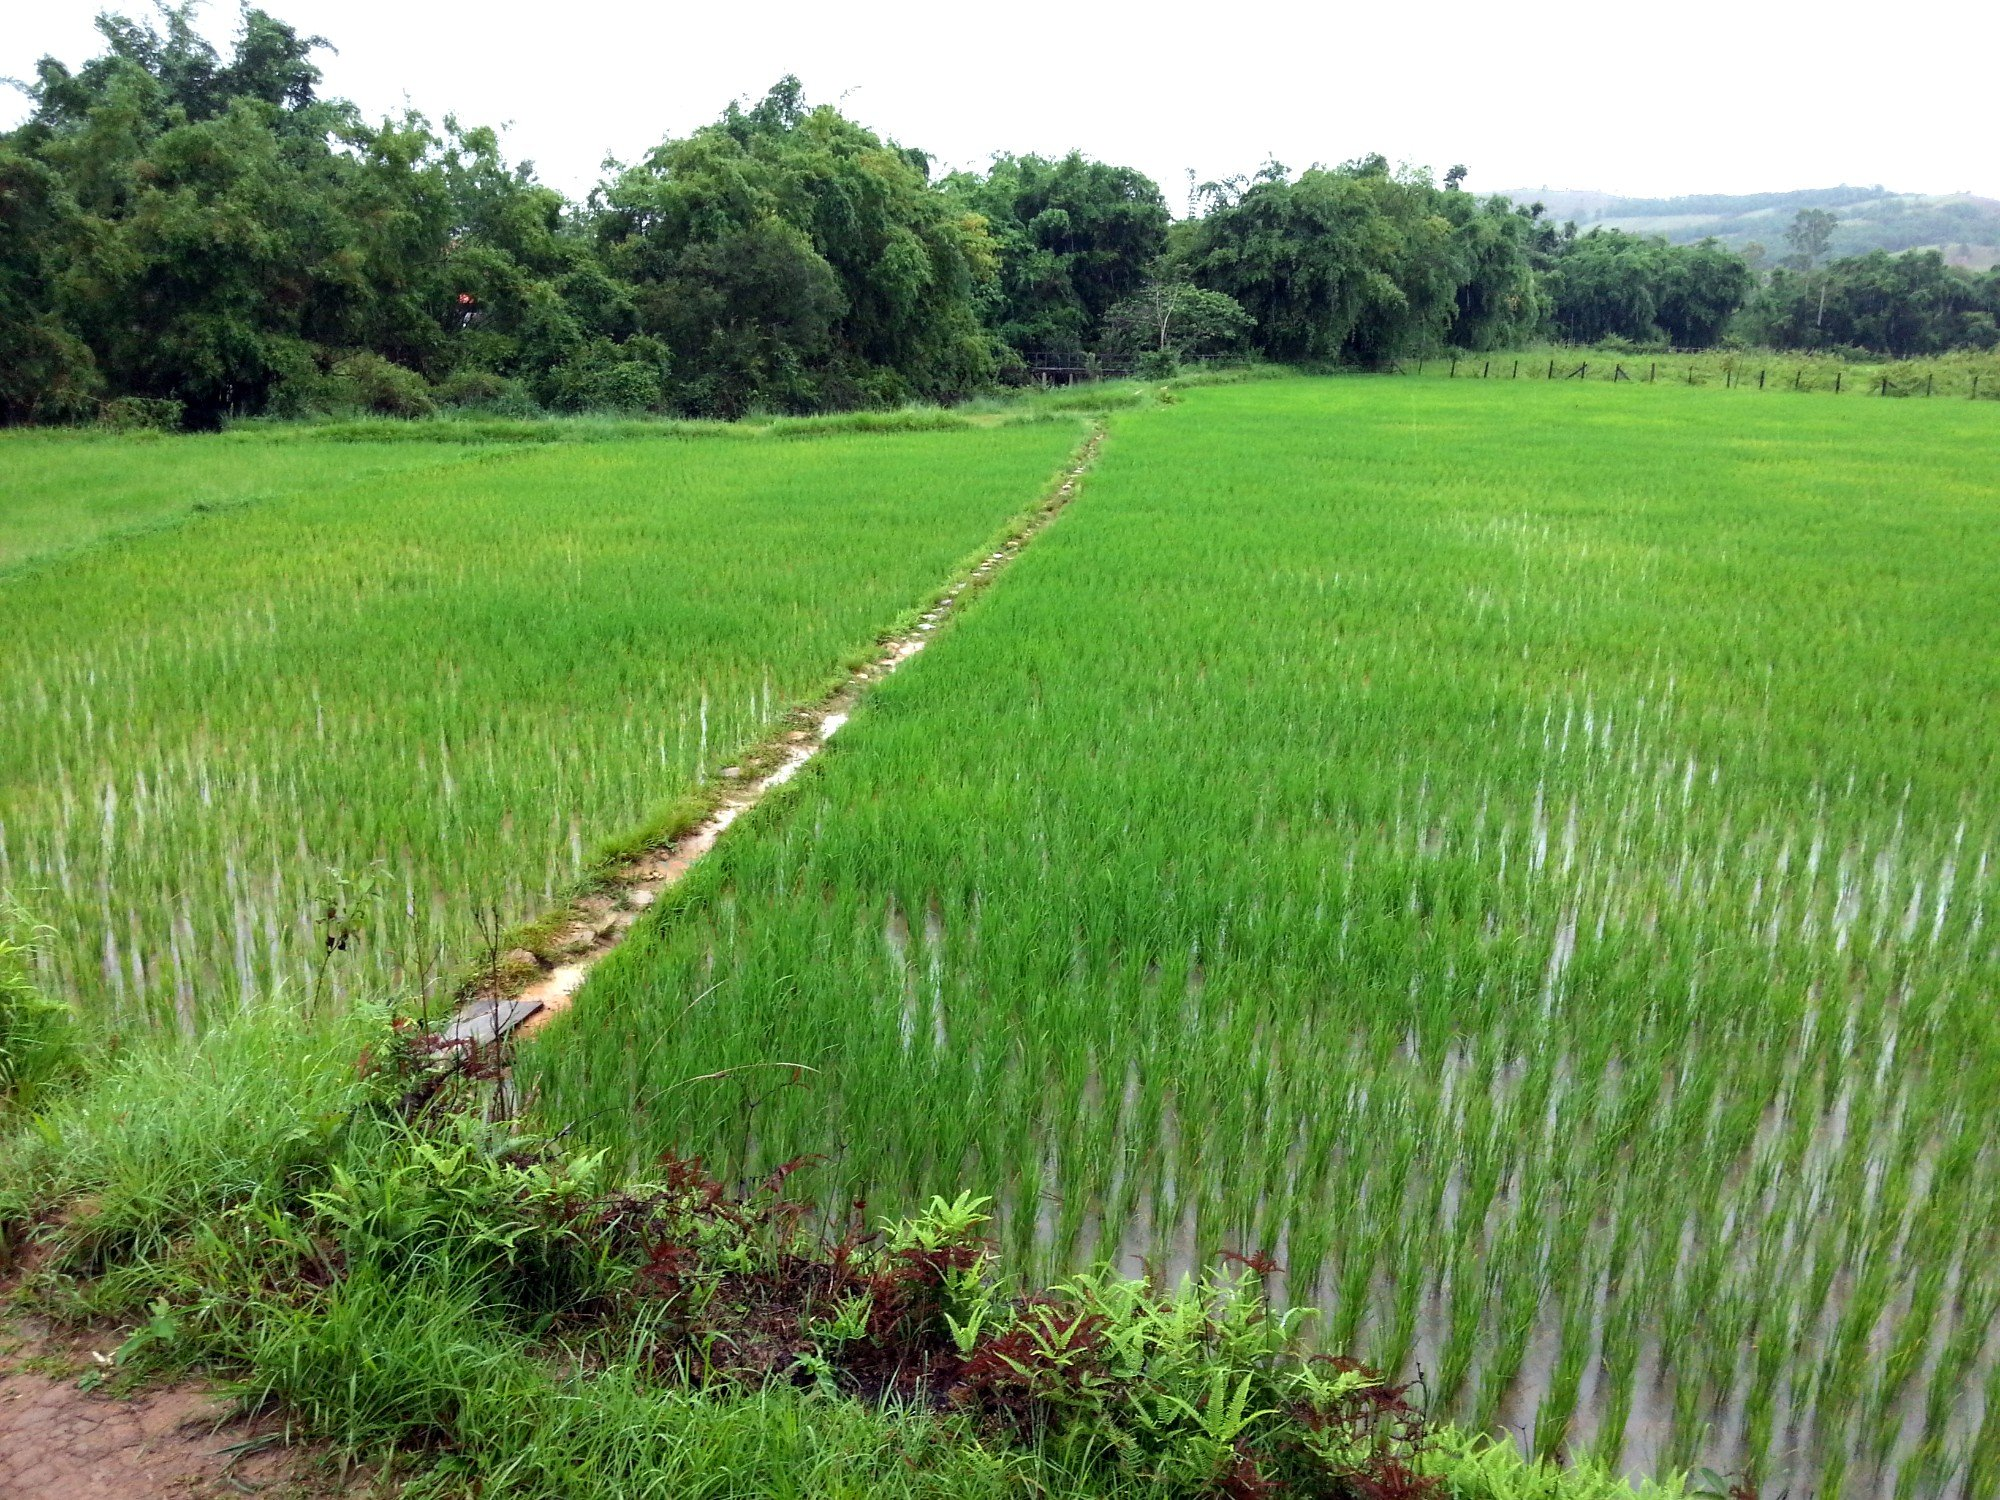 Crossing through the rice paddies at Jar Site 3